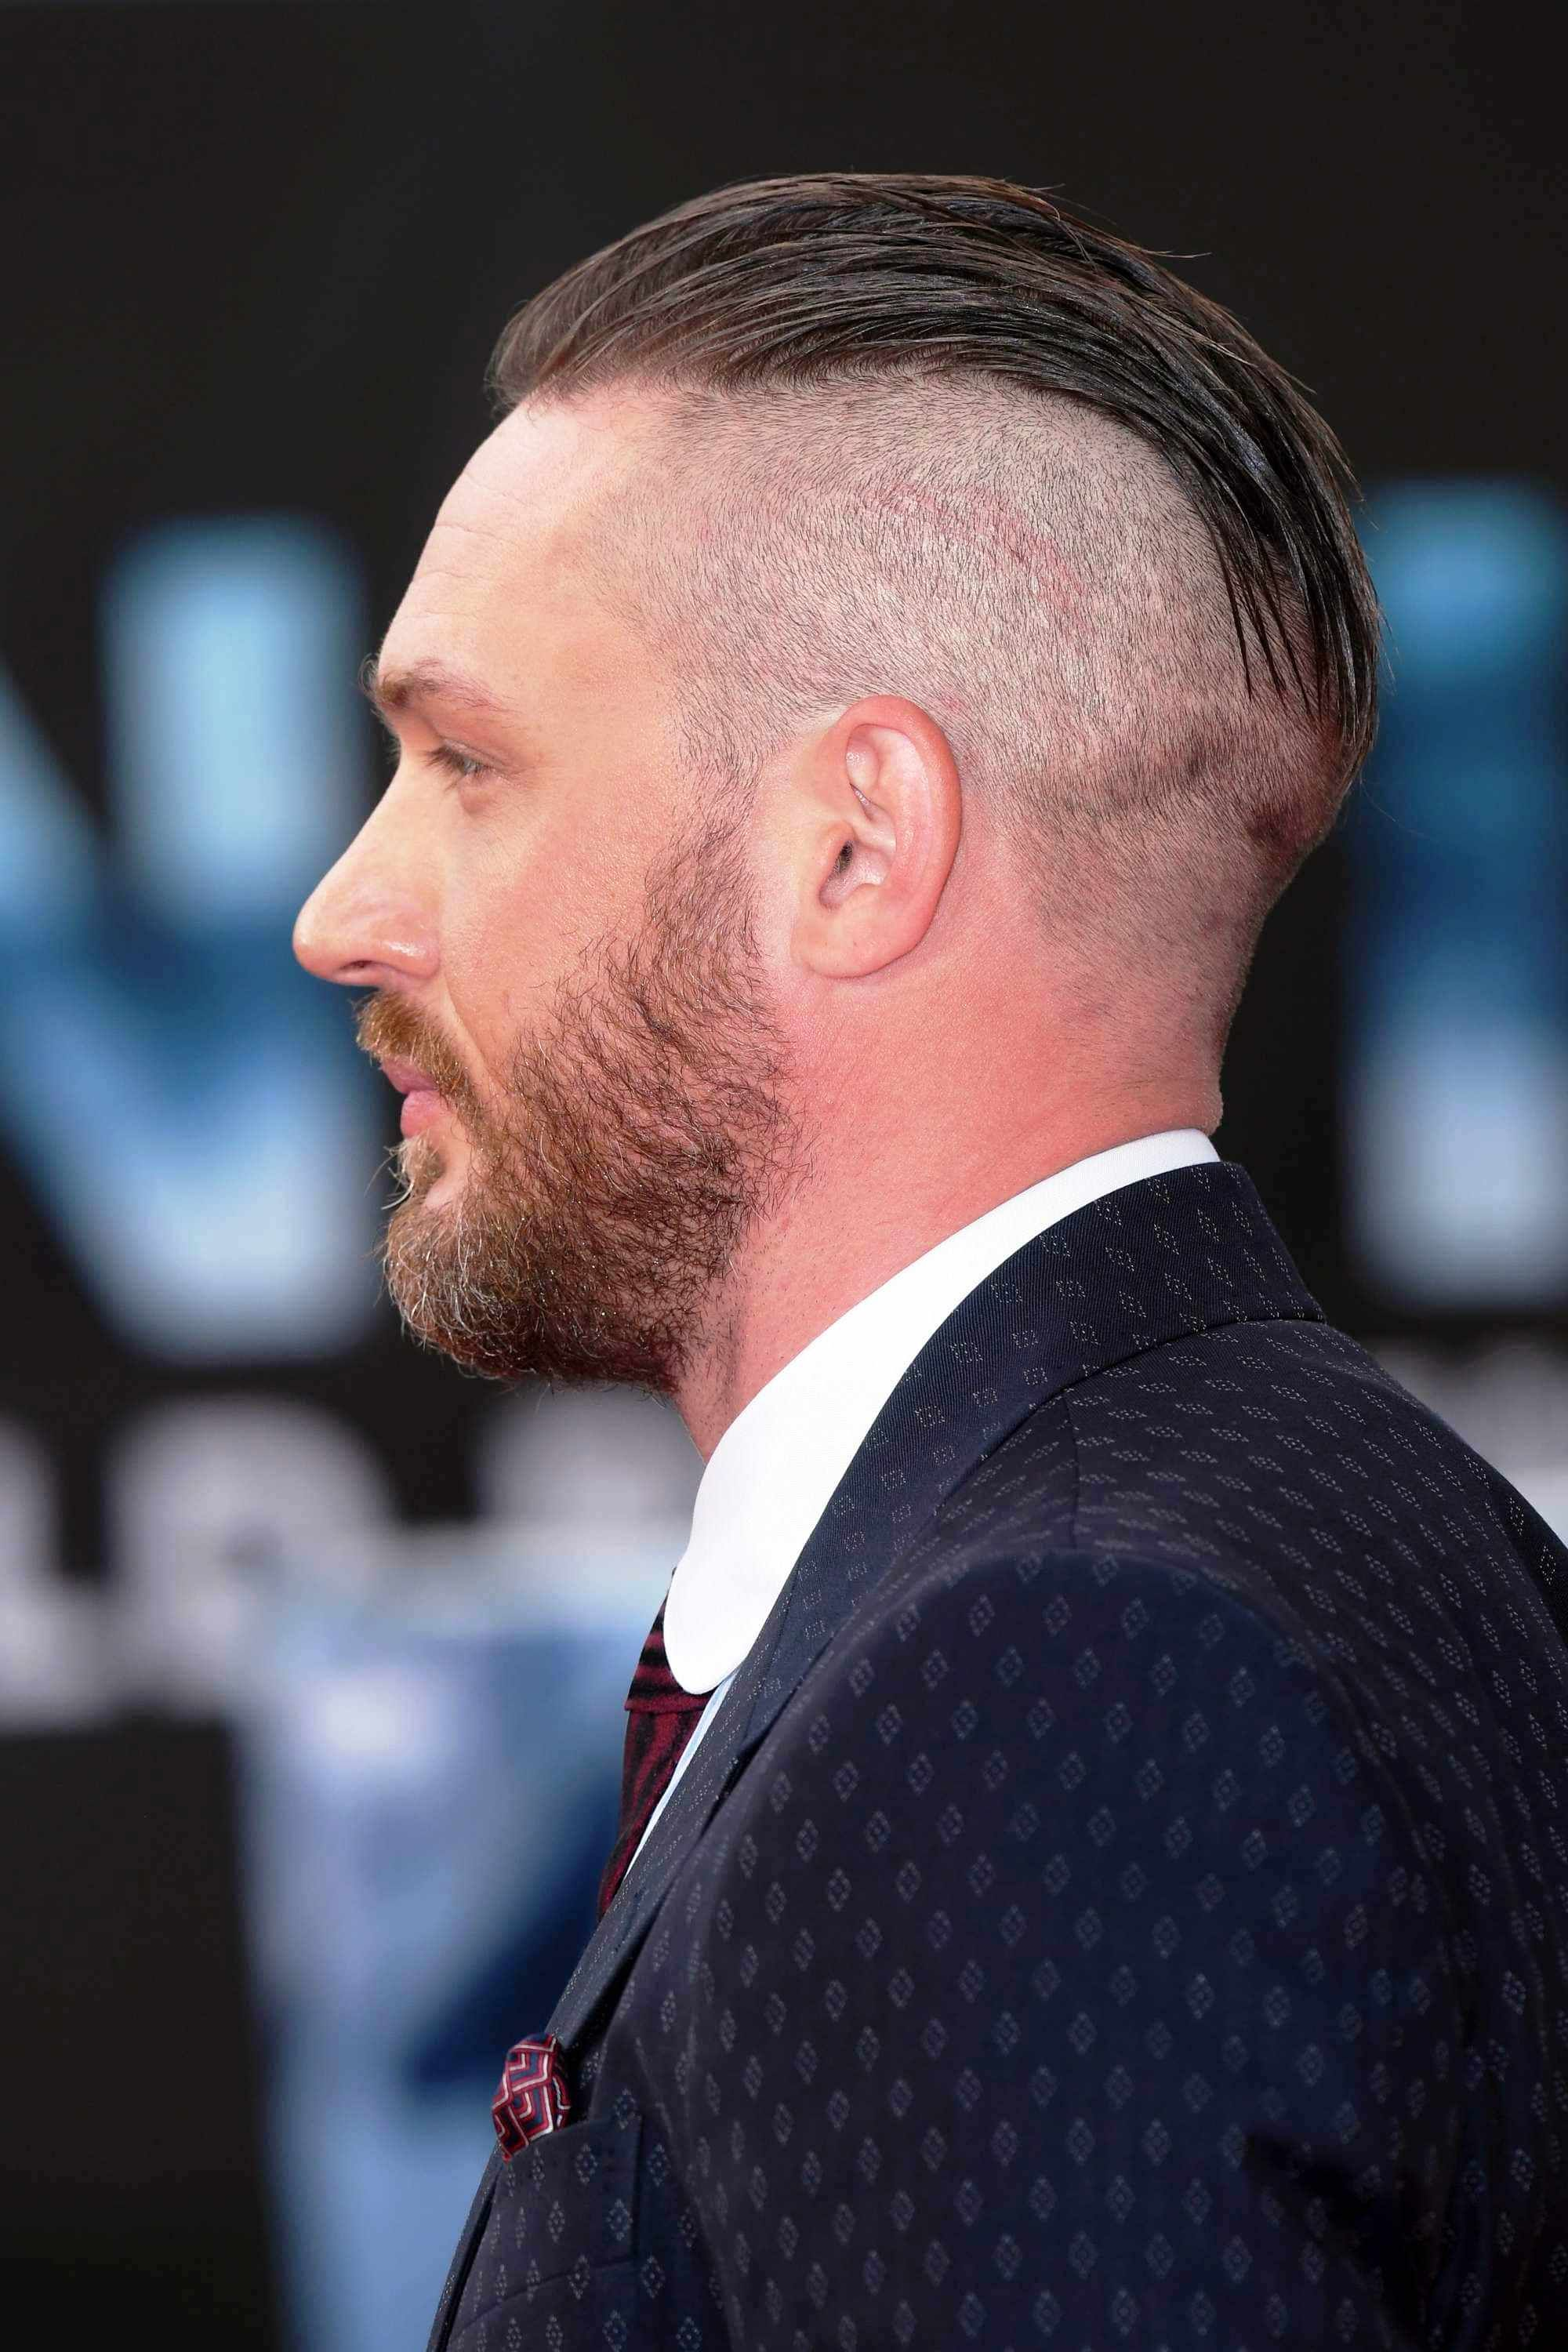 20 Amazing High And Tight Hairstyle Ideas Revelationluv Tom Hardy Haircut Peaky Blinder Haircut Mens Hairstyles